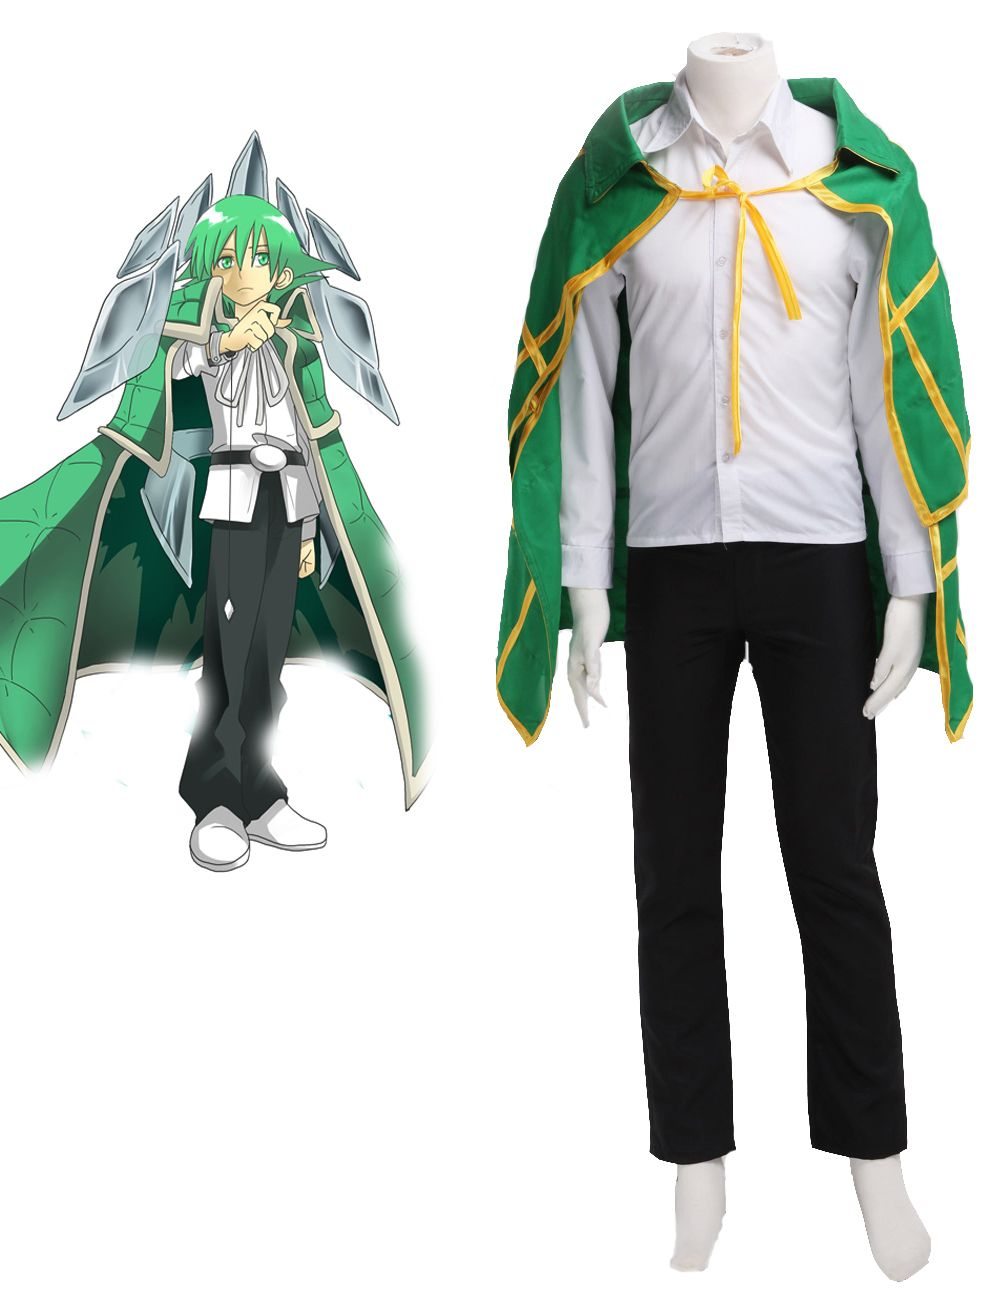 Shaman King Lyserg Diethel 3 piece Cosplay Costume